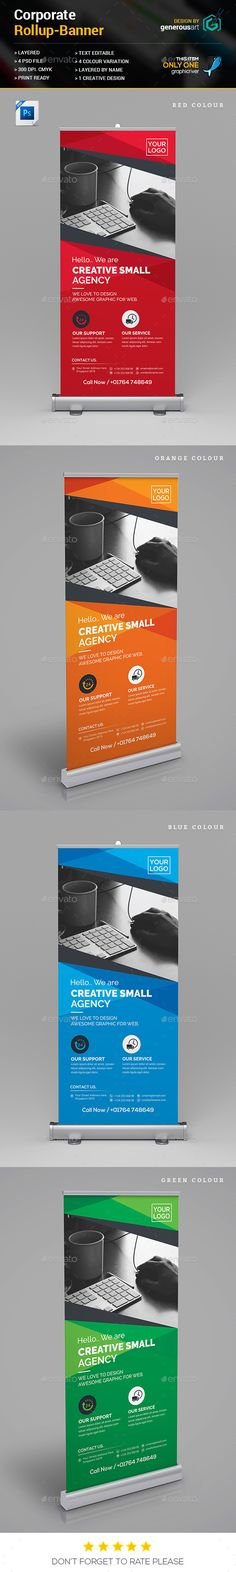 Rollup Banner — Photoshop PSD #landscape #web • Available here → https://graphicriver.net/item/rollup-banner/18006045?ref=pxcr